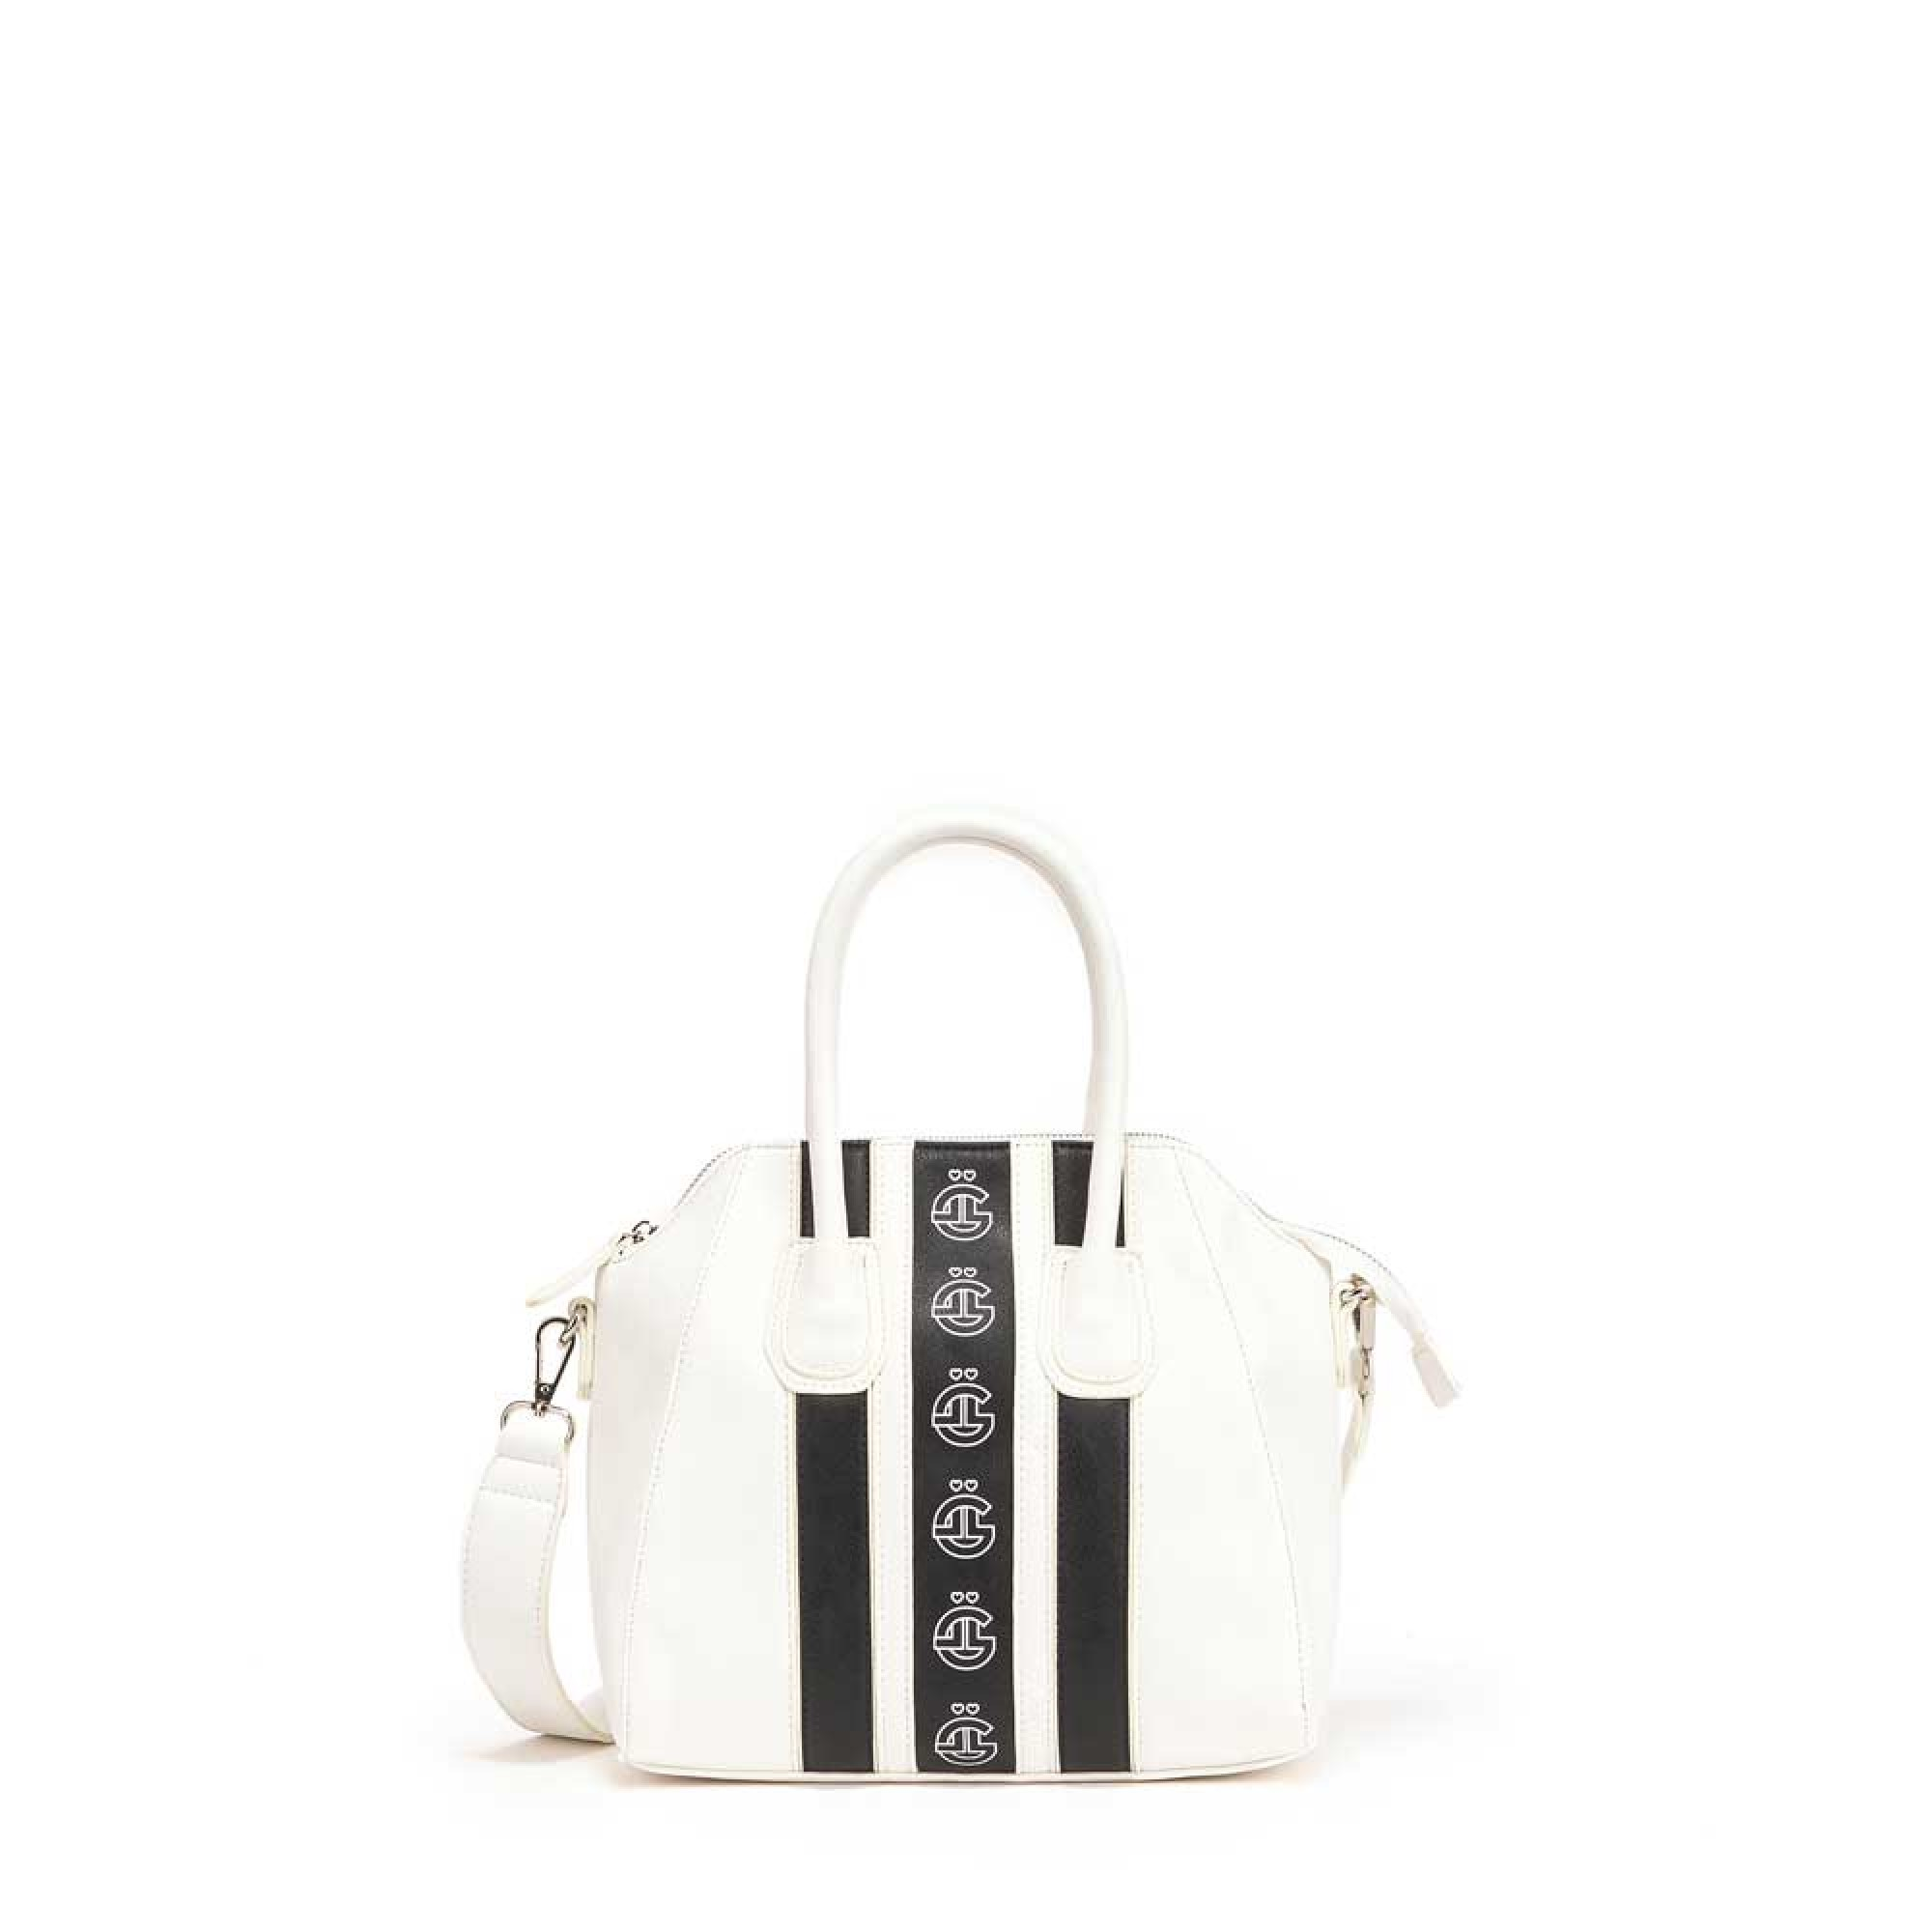 SHOULDER BAG - GBDA1550 - GAELLE PARIS